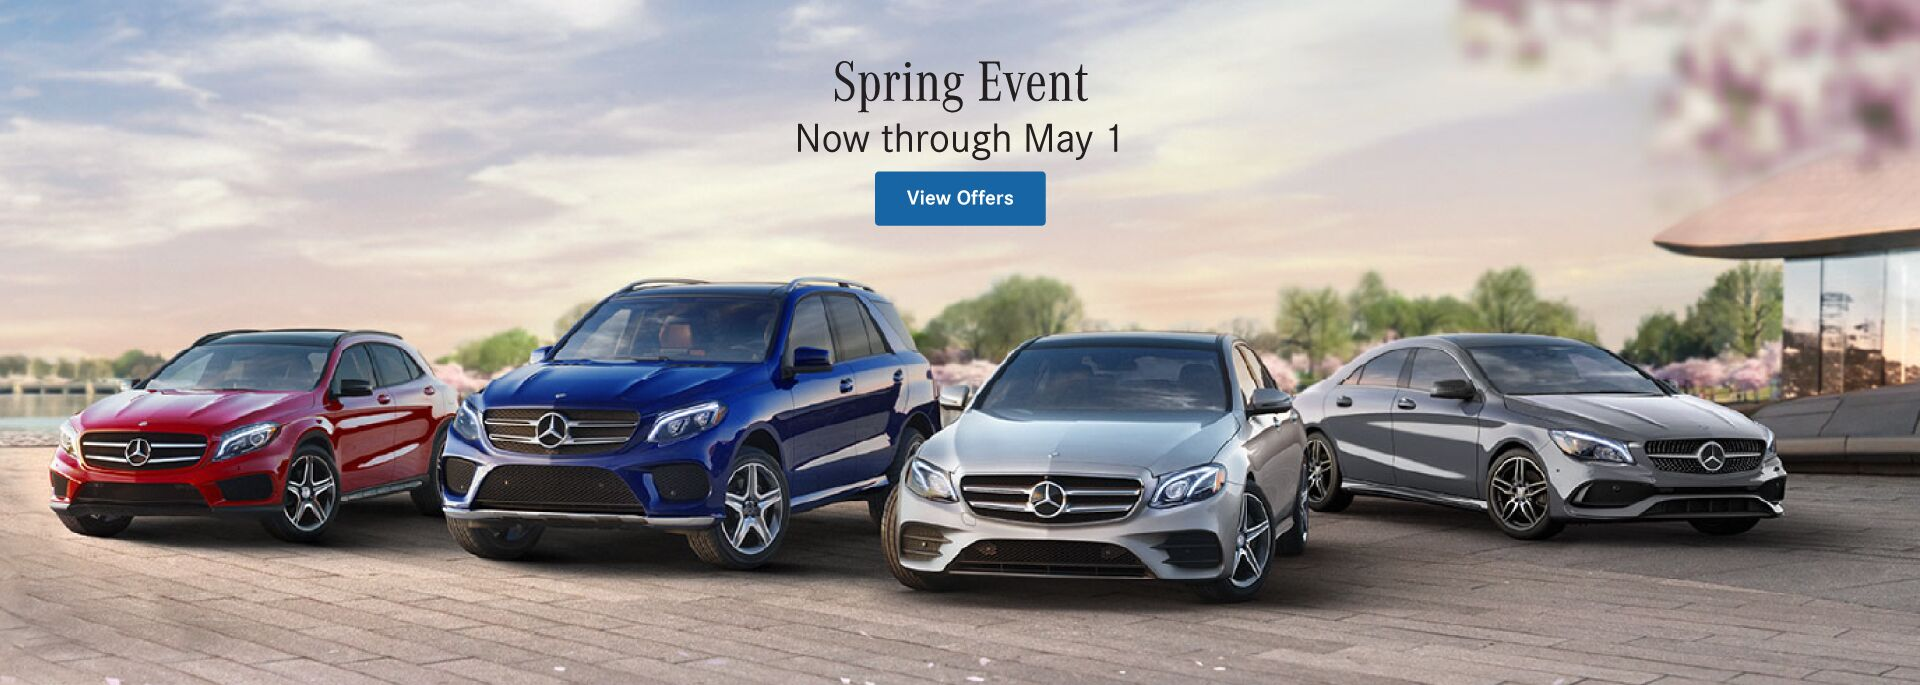 Mercedes benz dealership long island city ny used cars for Queens mercedes benz dealers